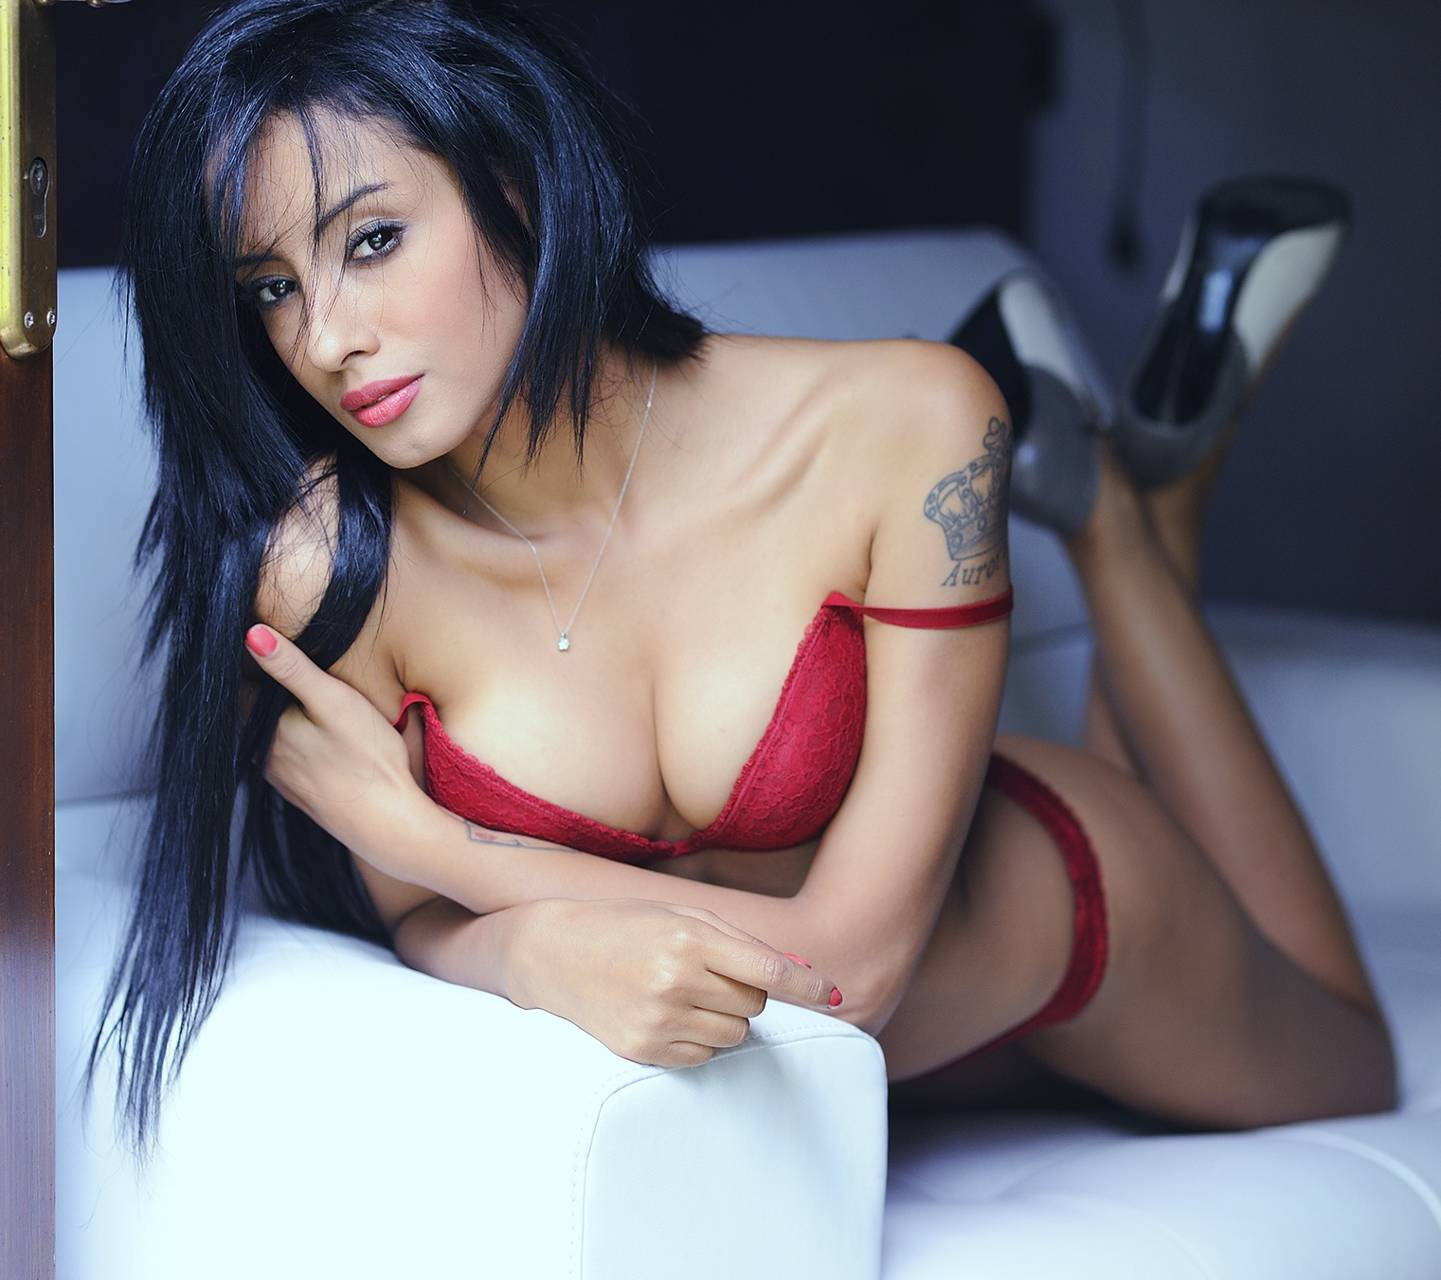 Red Hotness